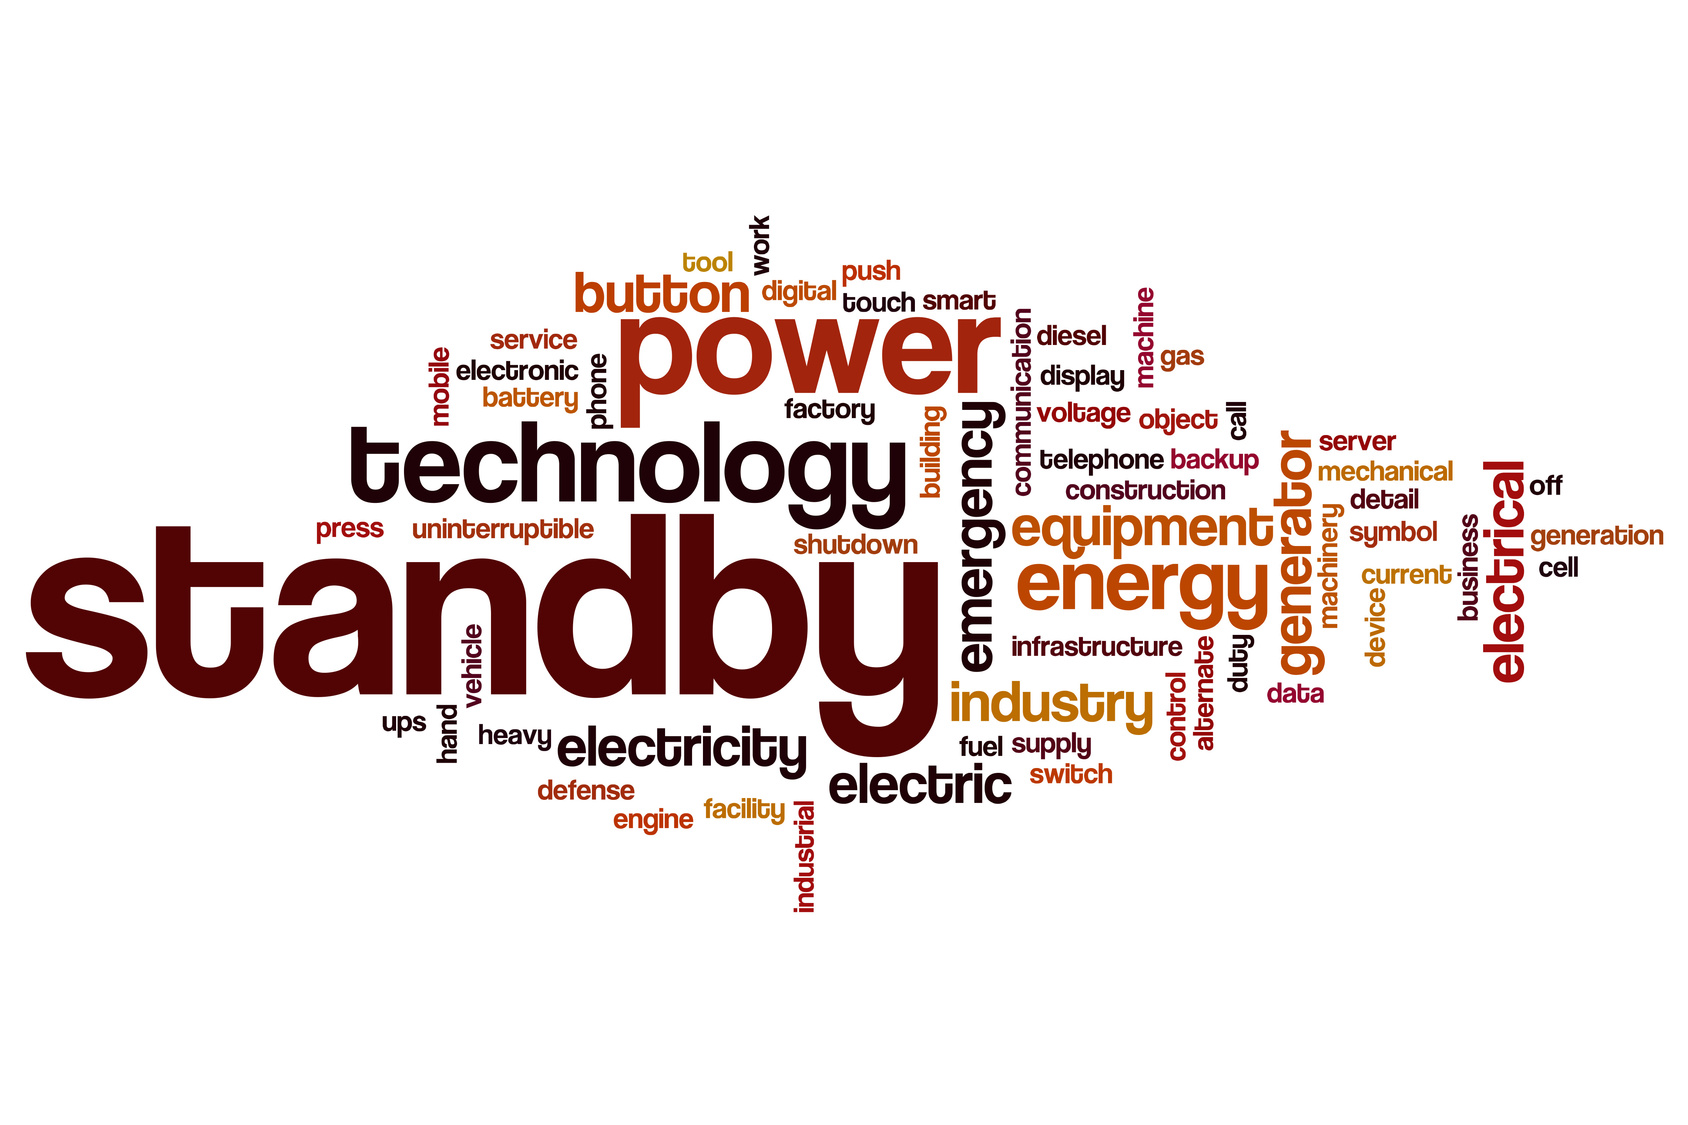 A power generator word cloud.